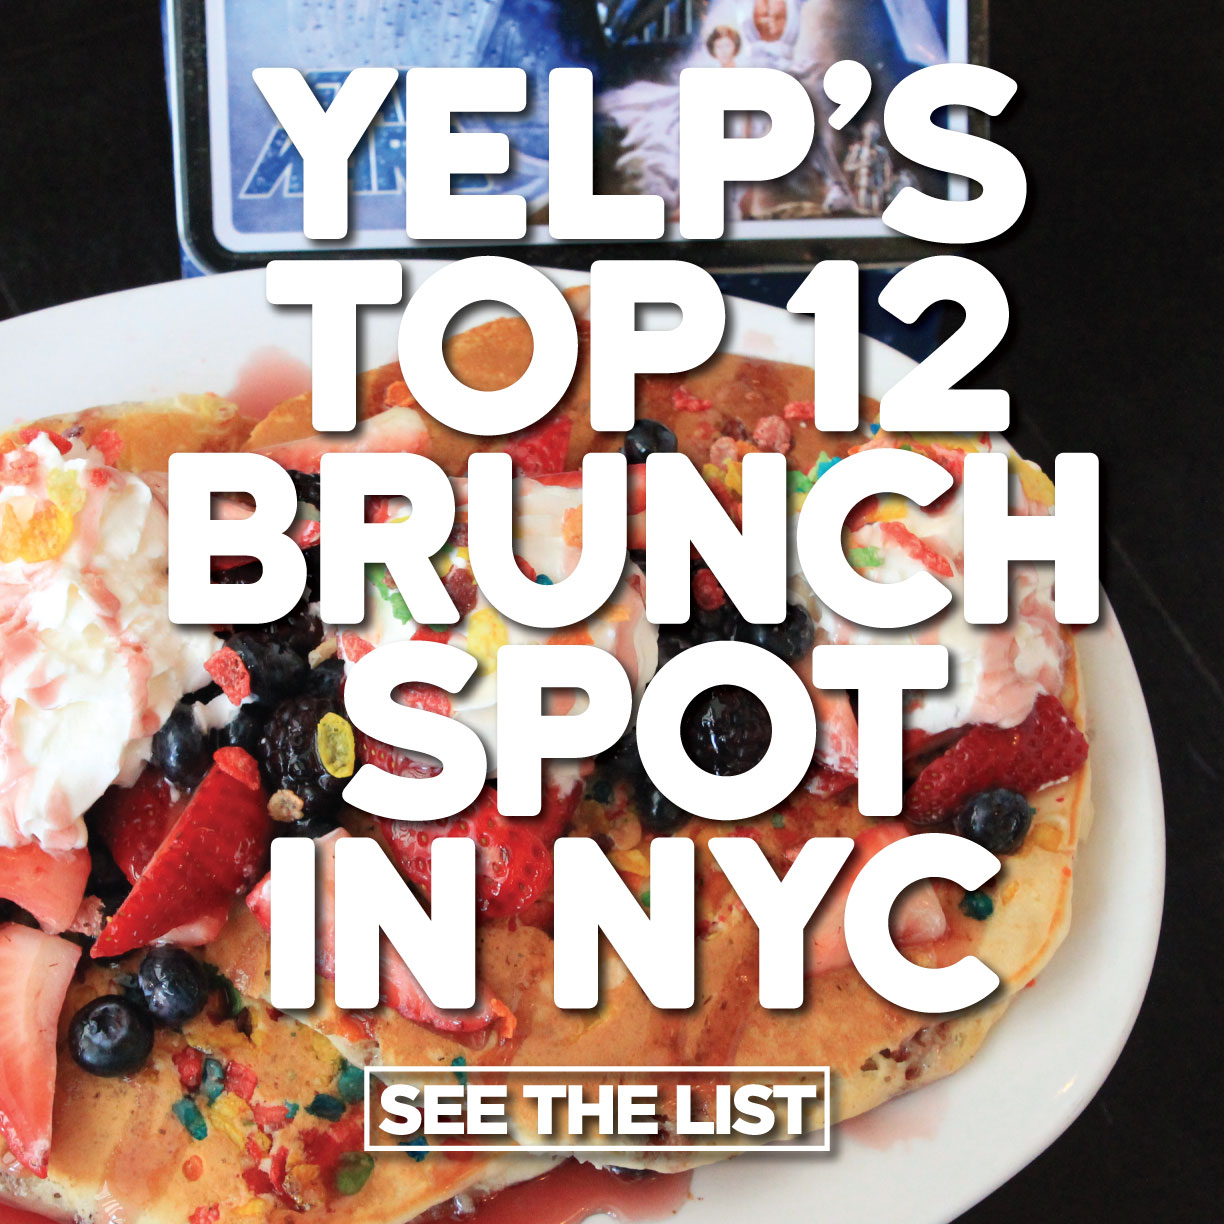 Mom's Named Top 12 Brunch Spot on Yelp